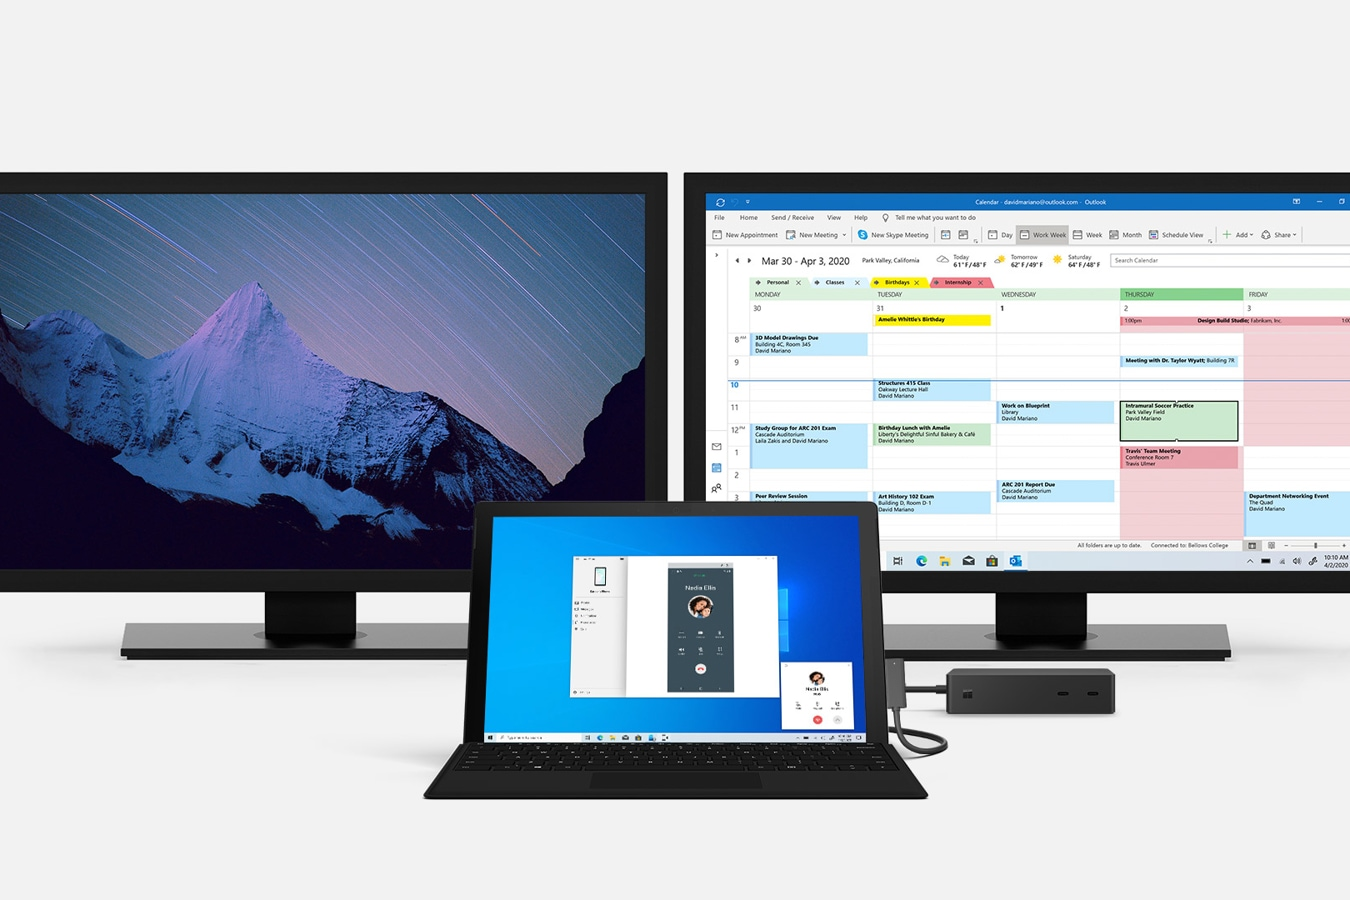 Surface Pro 7 and Surface Dock 2 connected to multiple large monitors